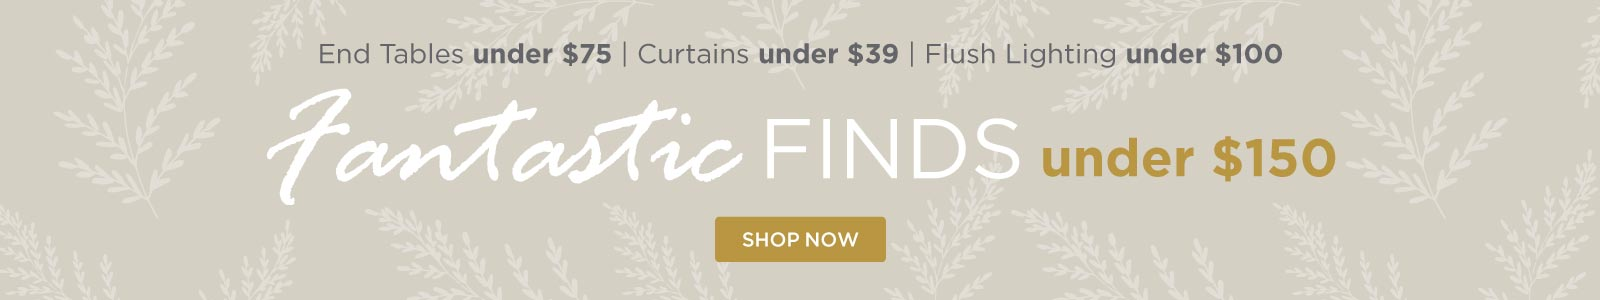 Fantastic Finds under $150